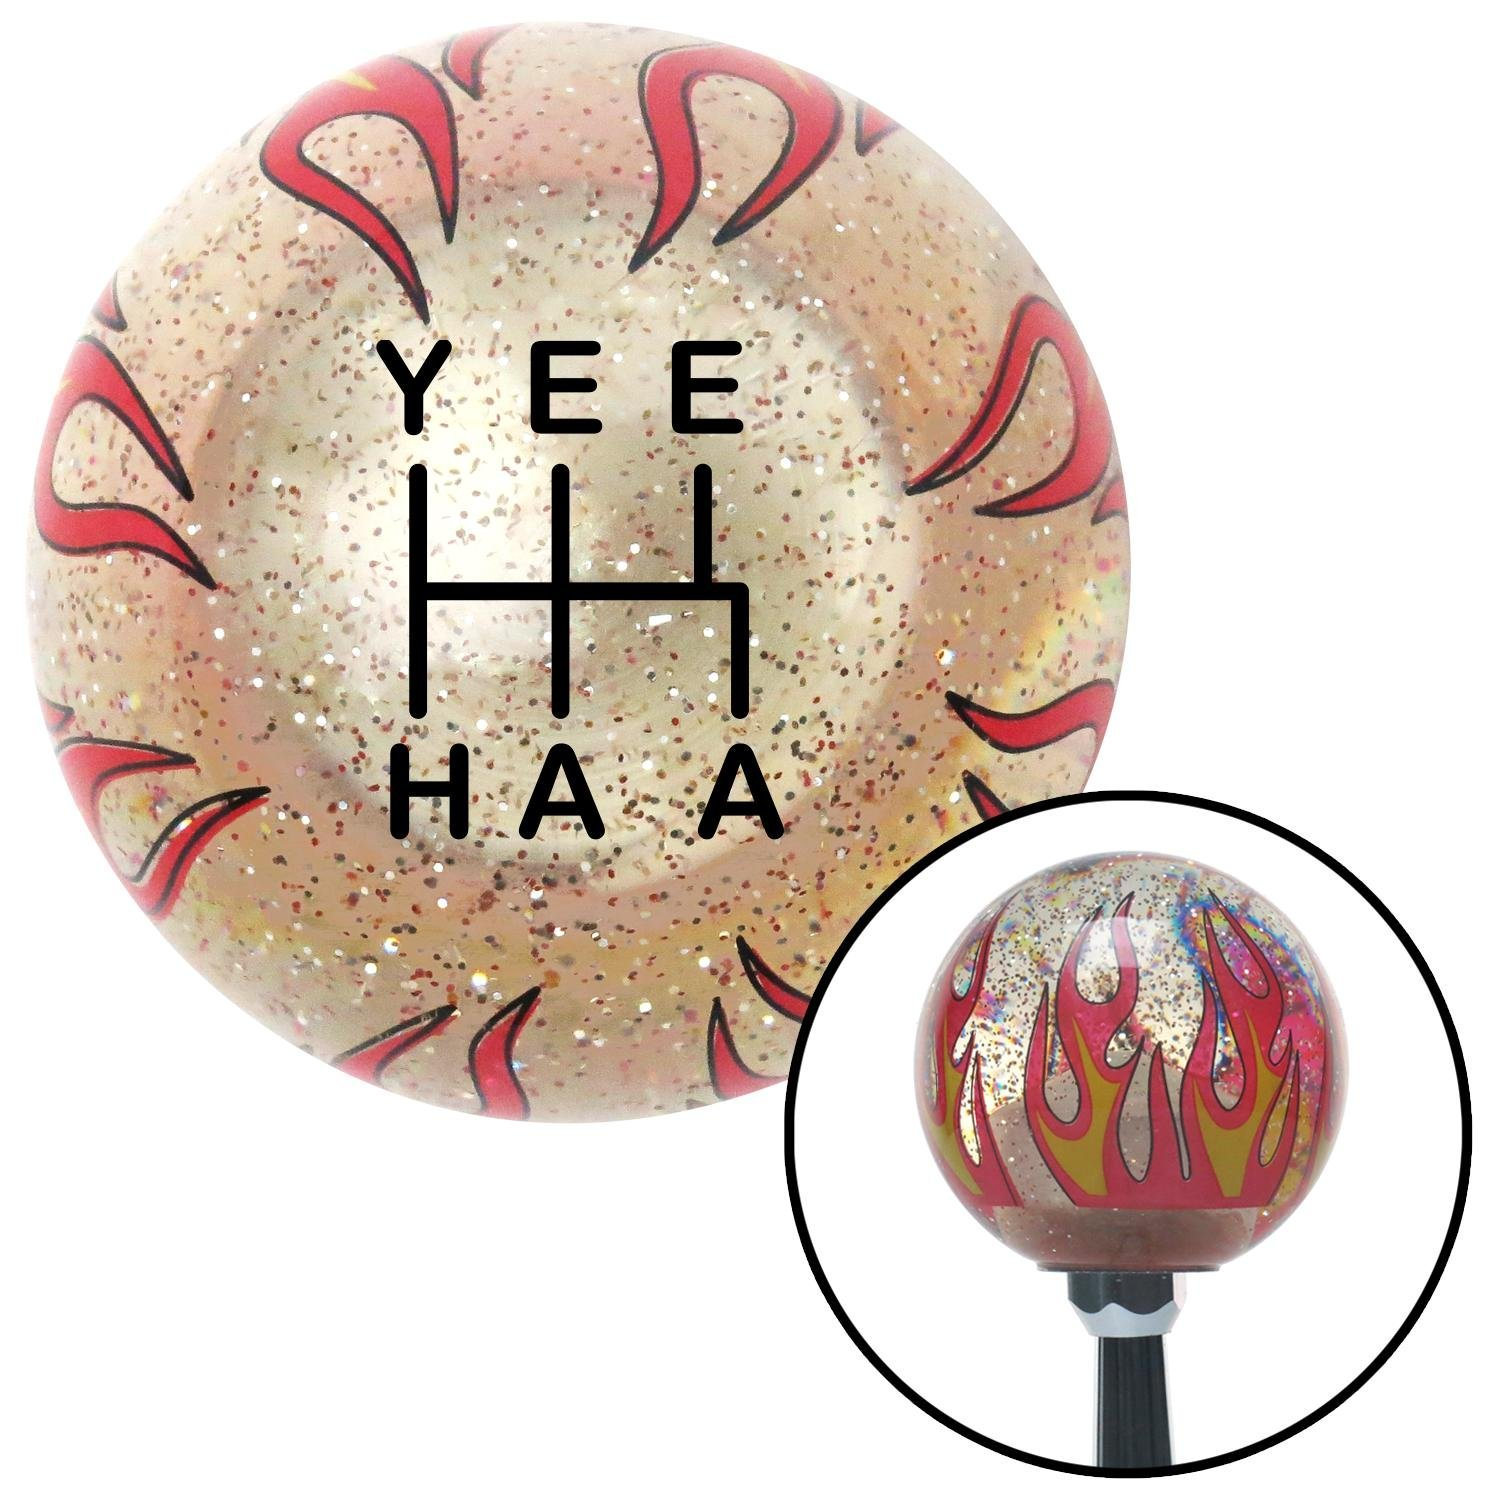 American Shifter 302236 Shift Knob Black YeeHaa 5 Speed Clear Flame Metal Flake with M16 x 1.5 Insert